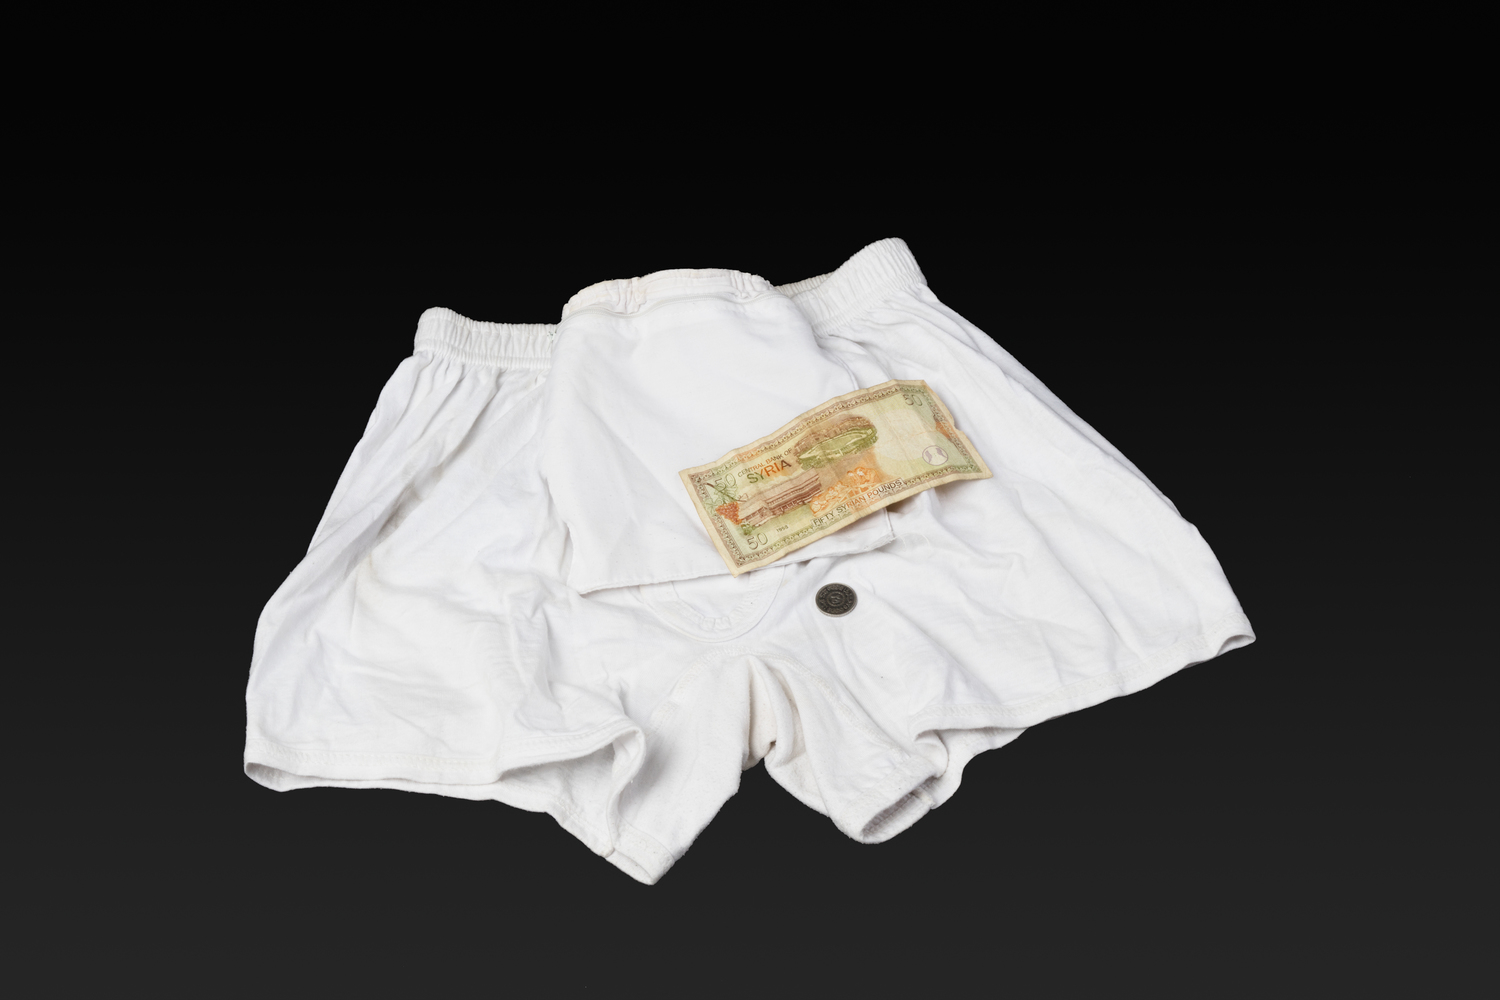 Underpants with sewn-in purse (The owner fled from Syria via Egypt and the Mediterranean to Germany in 2013).